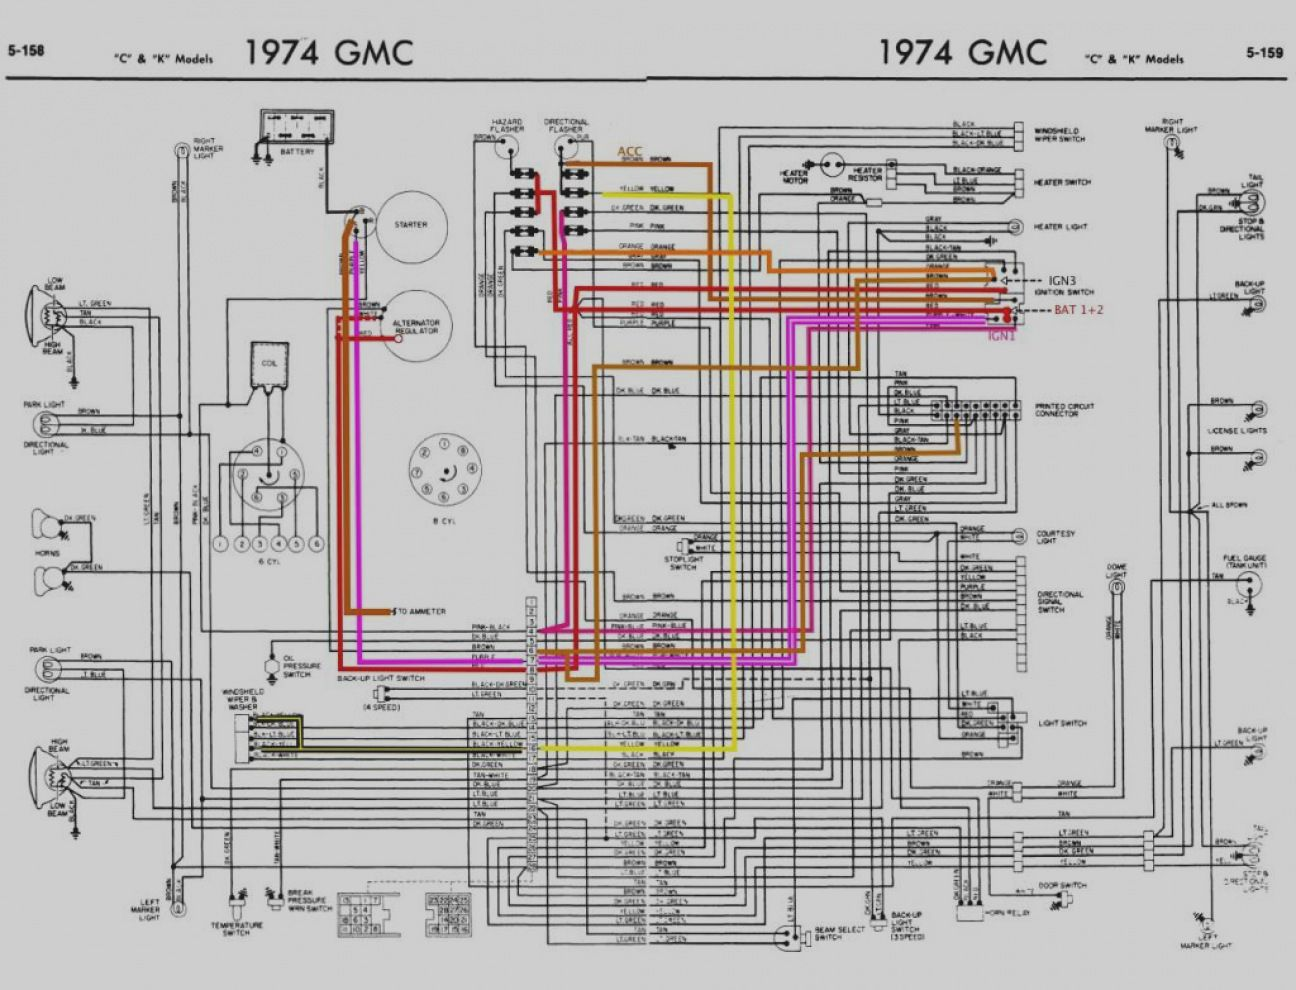 medium resolution of winnebago wiring diagrams wiring diagram forward 1973 winnebago wiring diagram manual of wiring diagram 1973 winnebago